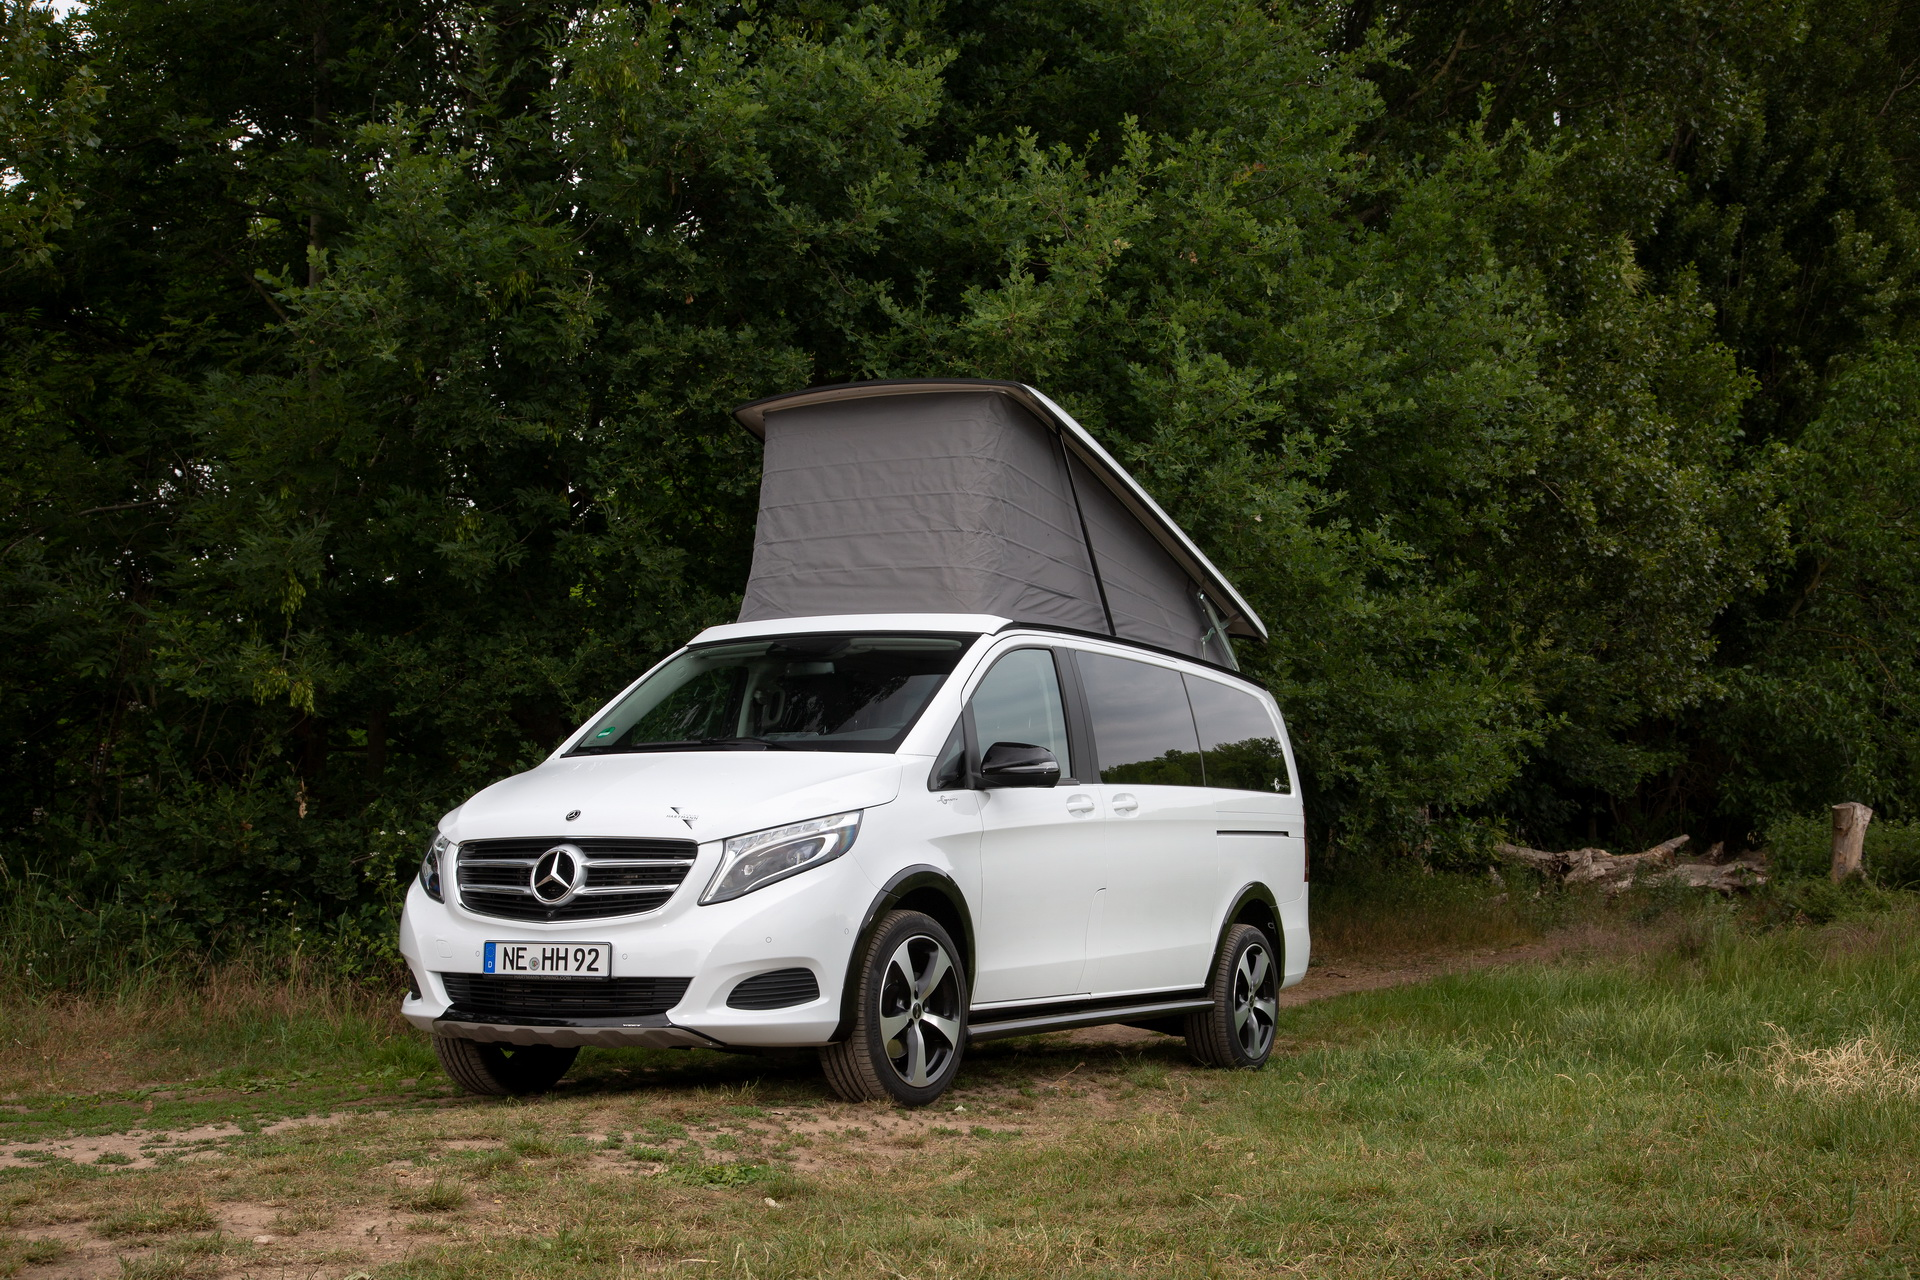 Mercedes Benz Marco Polo Vp Gravity Camper (6)